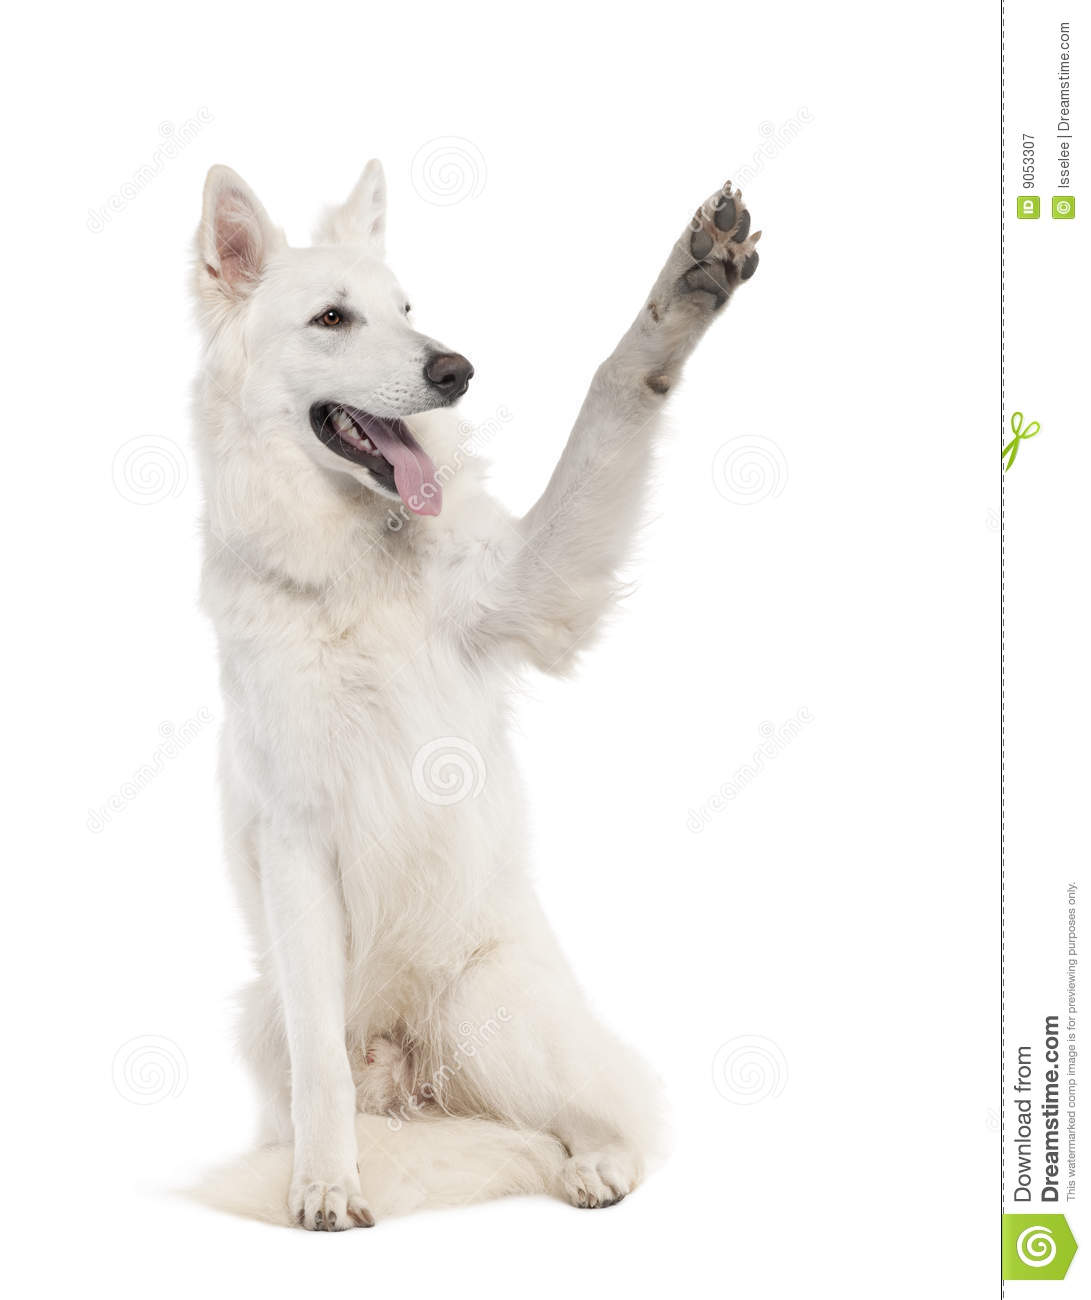 White shepherd dog 1 year old in front of a white background